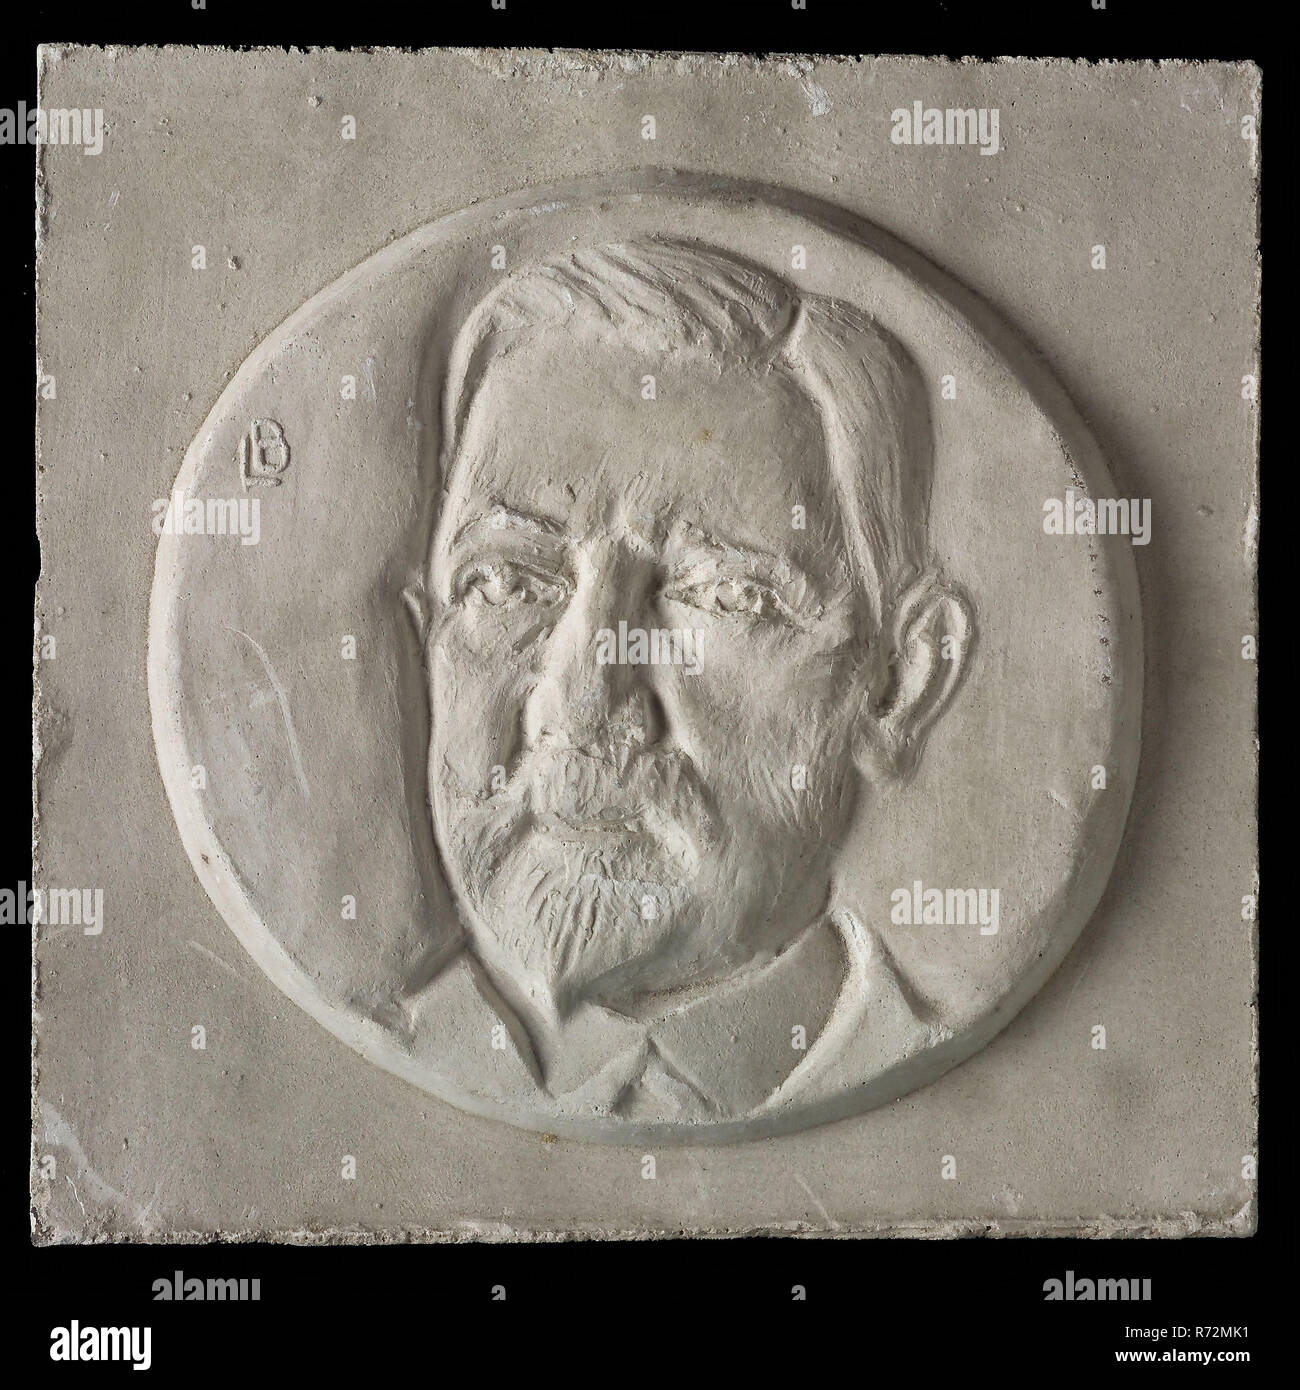 Leendert Bolle, Two halves of mold for Medal, respectively high and low relief, within circle man's portrait with beard and mustache, for three quarters, mold casting sculpture gypsum, left above signed LB Rotterdam - Stock Image